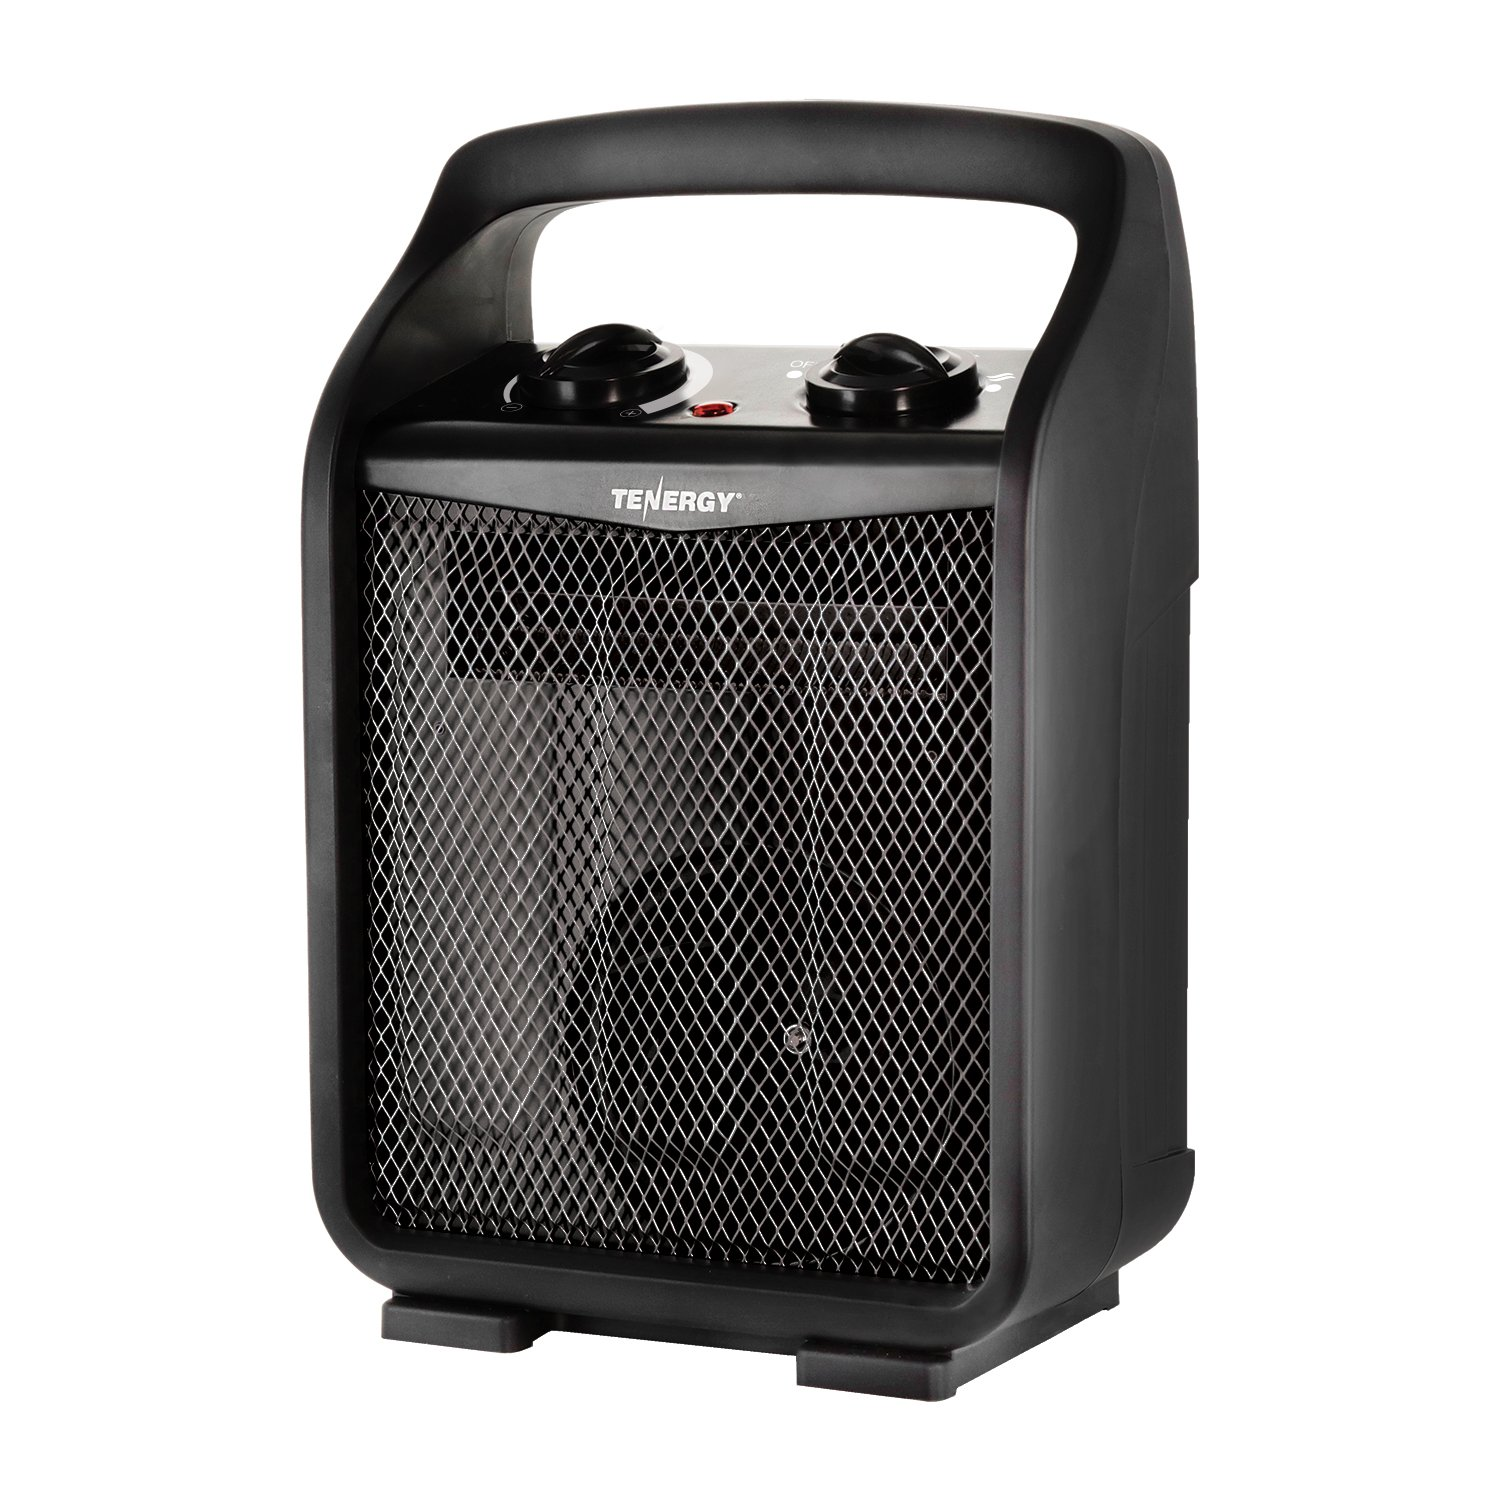 Tenergy 1500W/750W Portable Space Heaters with Adjustable Thermostat, Recirculation Air Electric Fan Heater with Auto Shut Off Switch, Tip-over & Overheat Protection